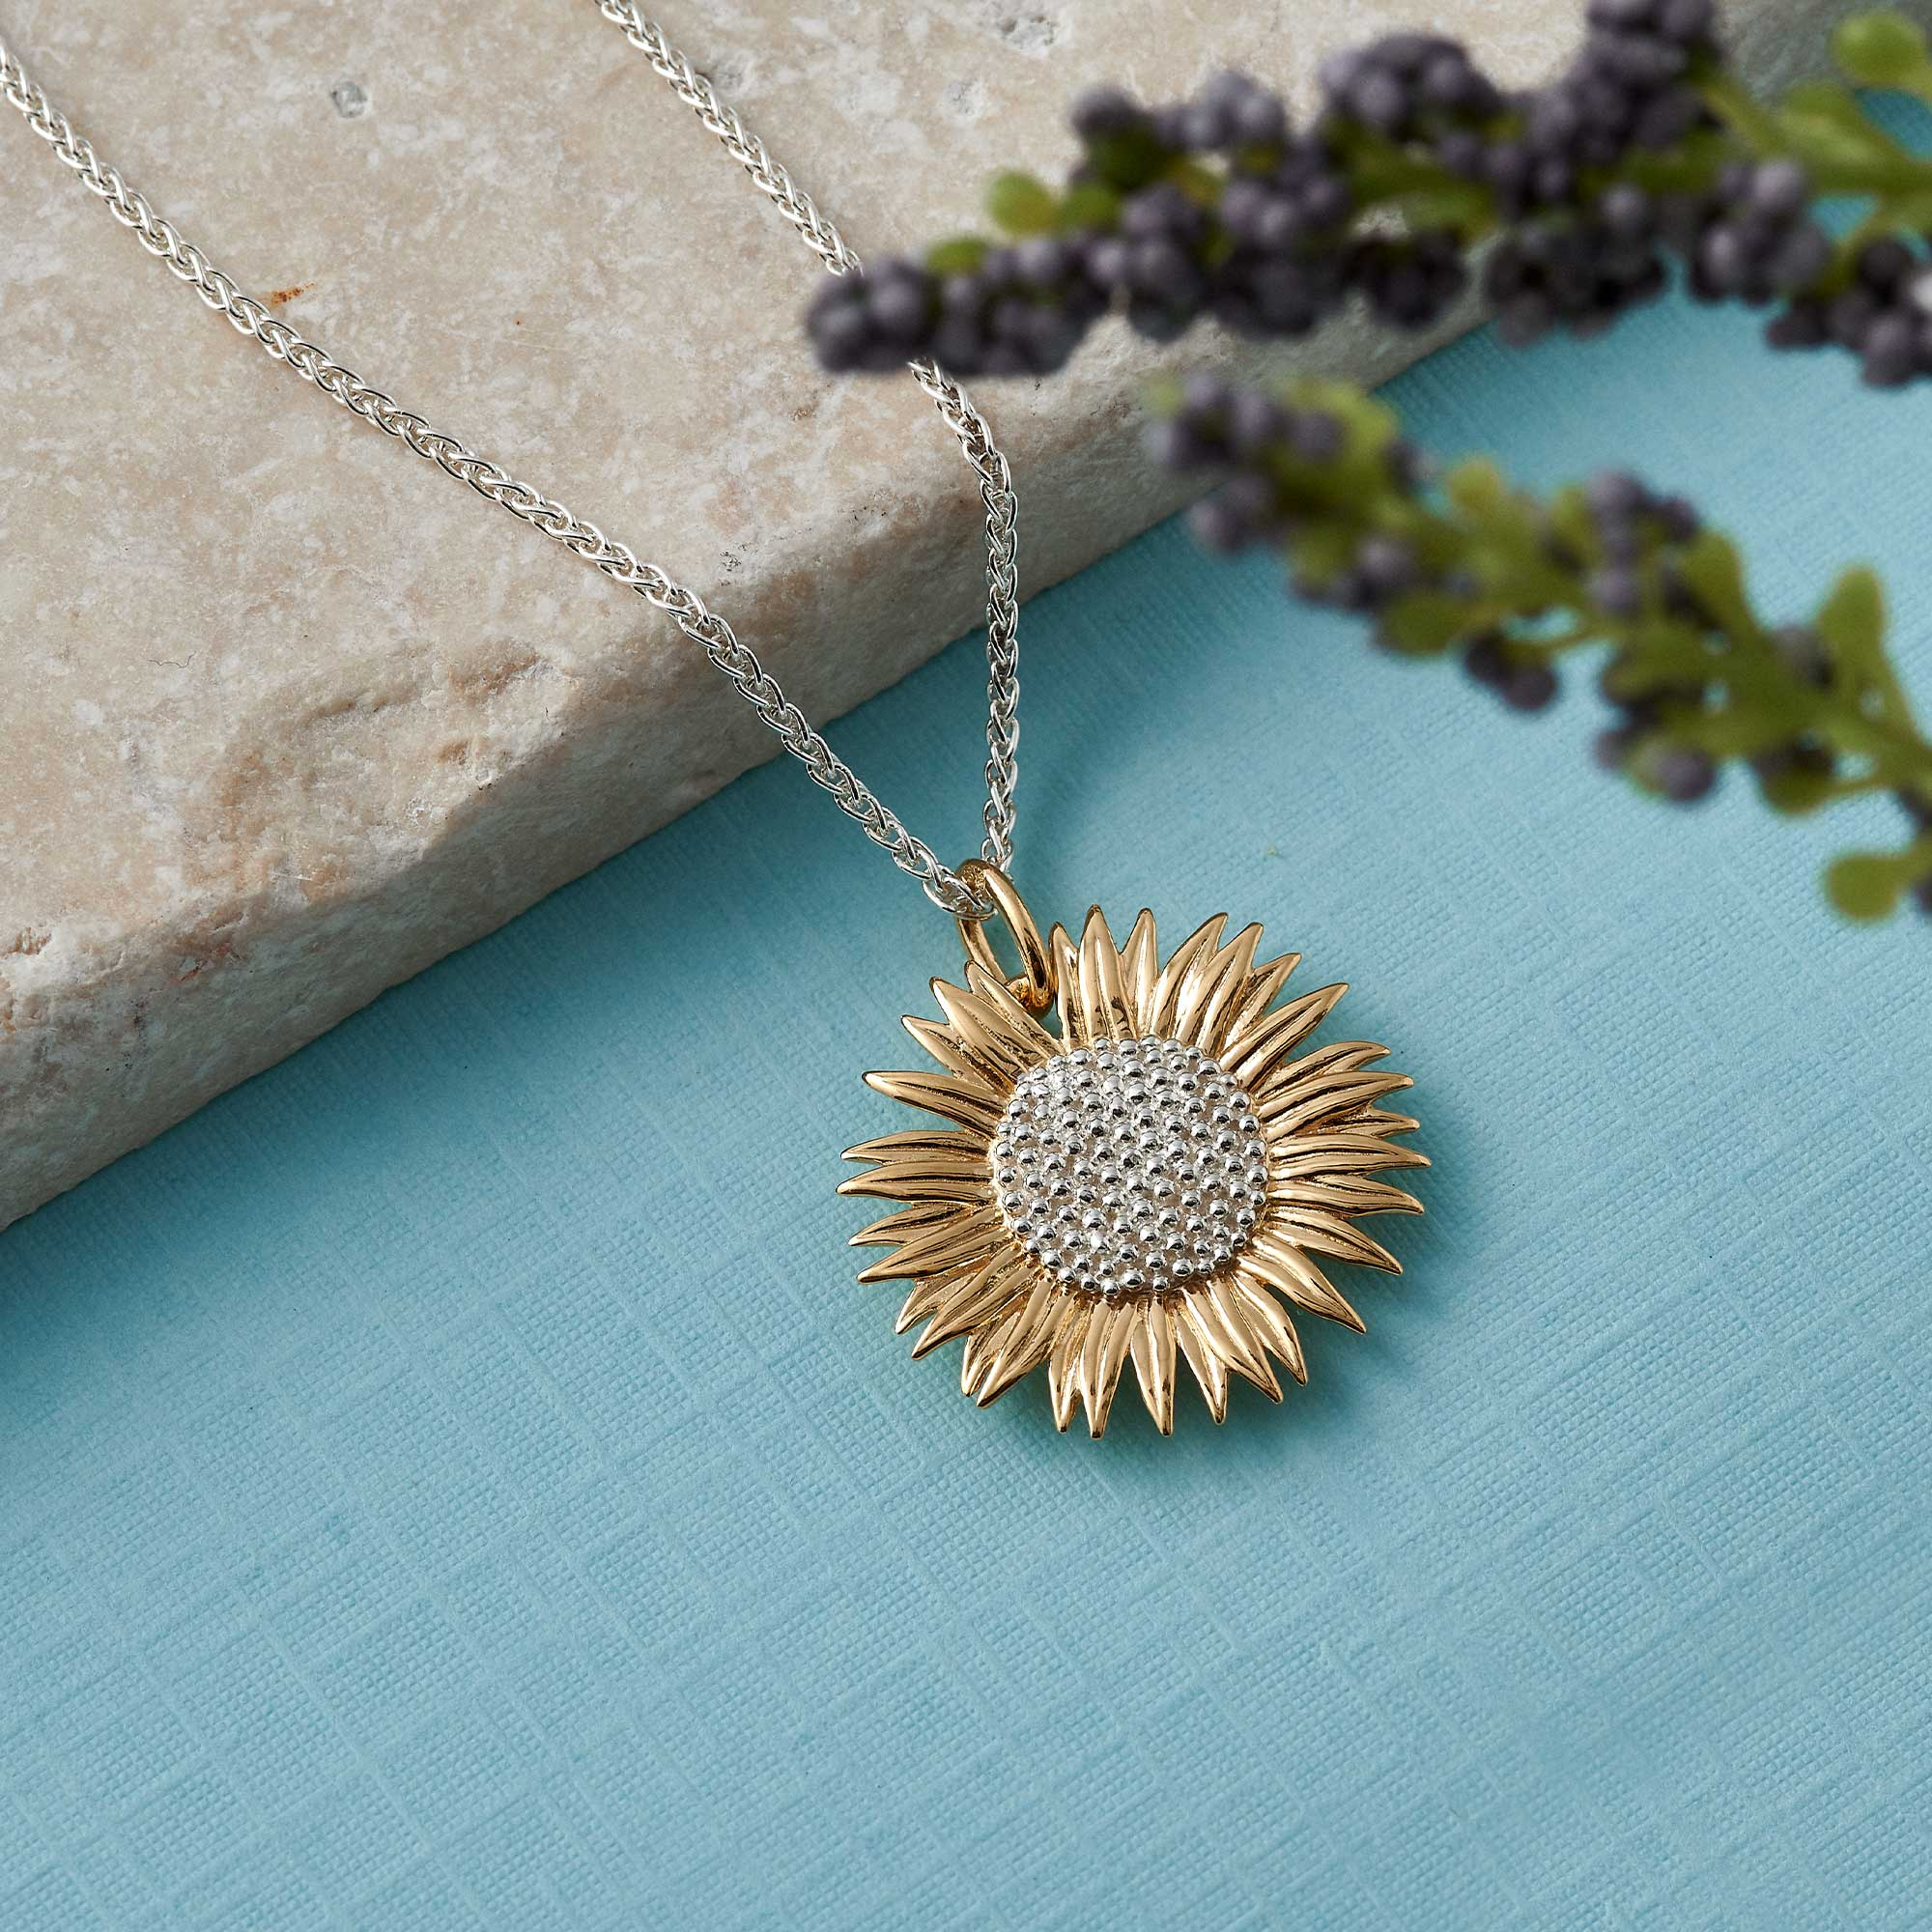 gold vermeil 18k sunflower pendant necklace jewellery made in uk